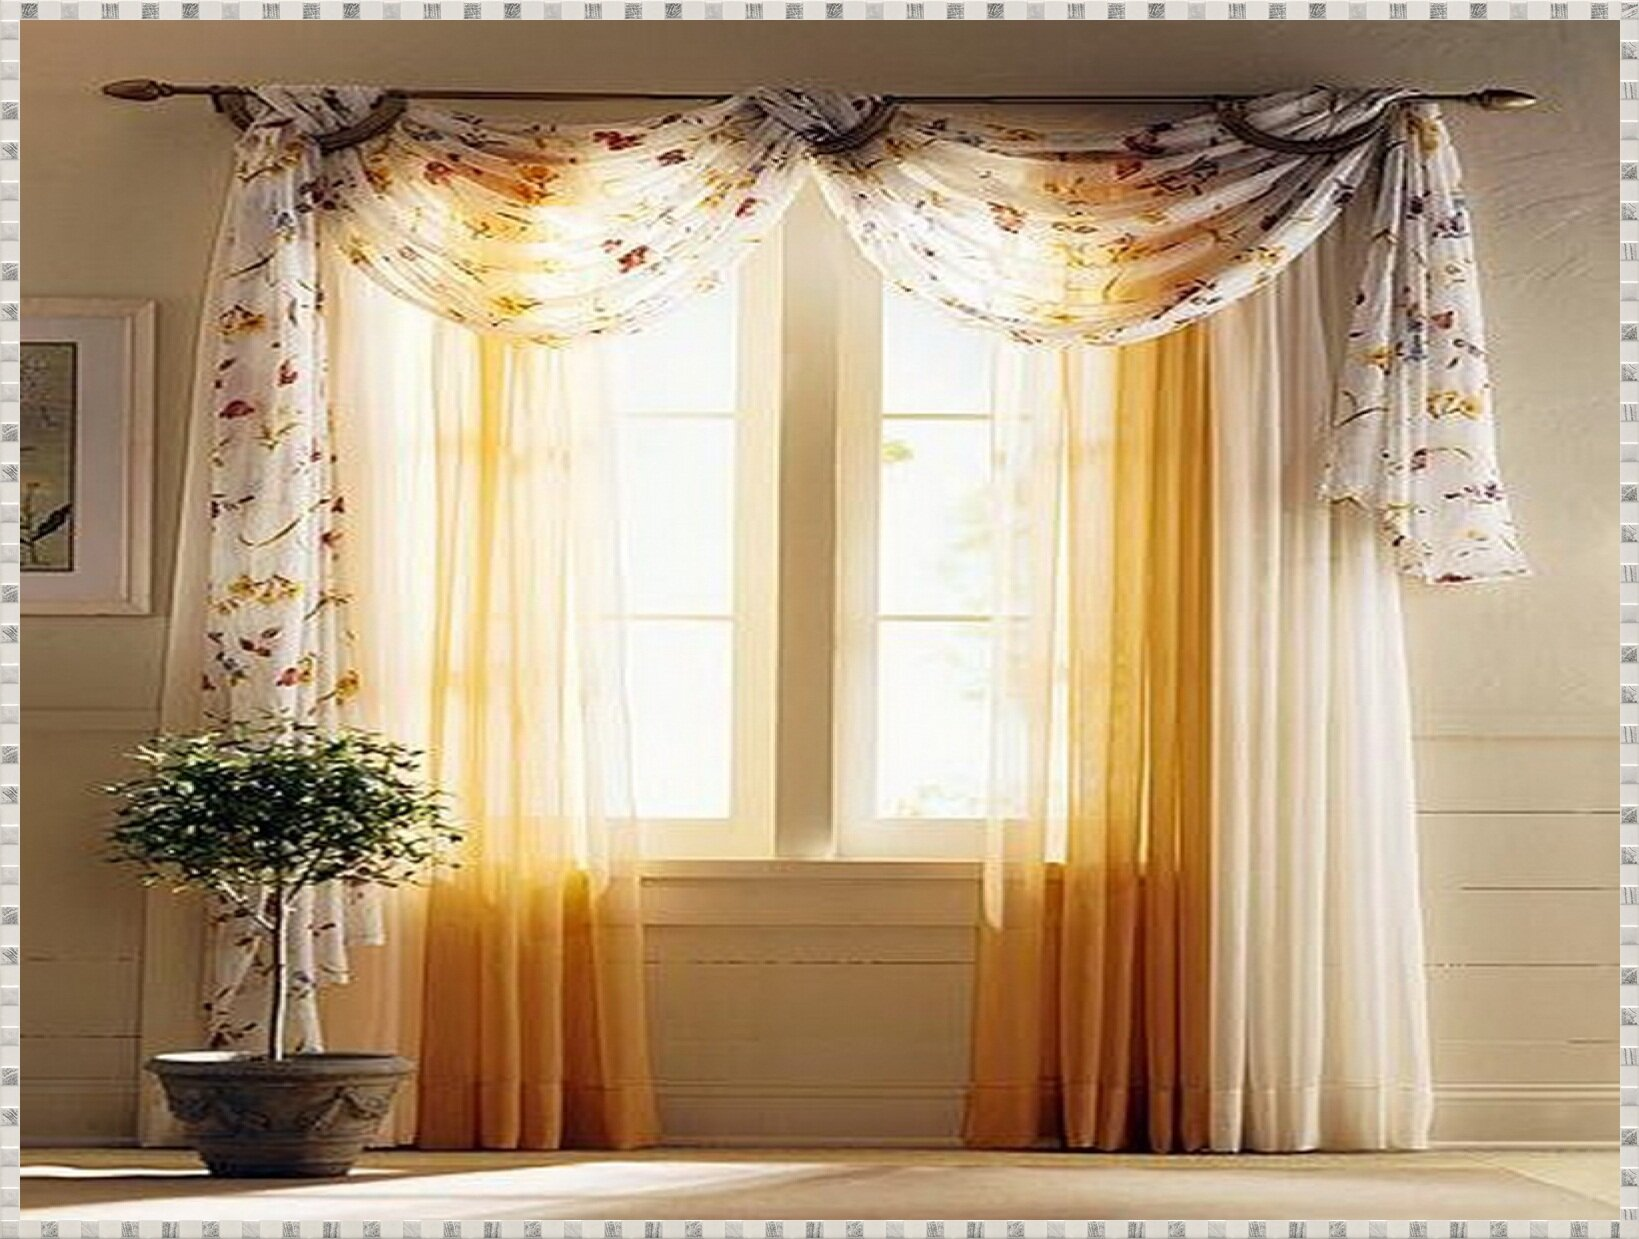 Living Room Valances | Window Curtains and Valances | Valance Windows